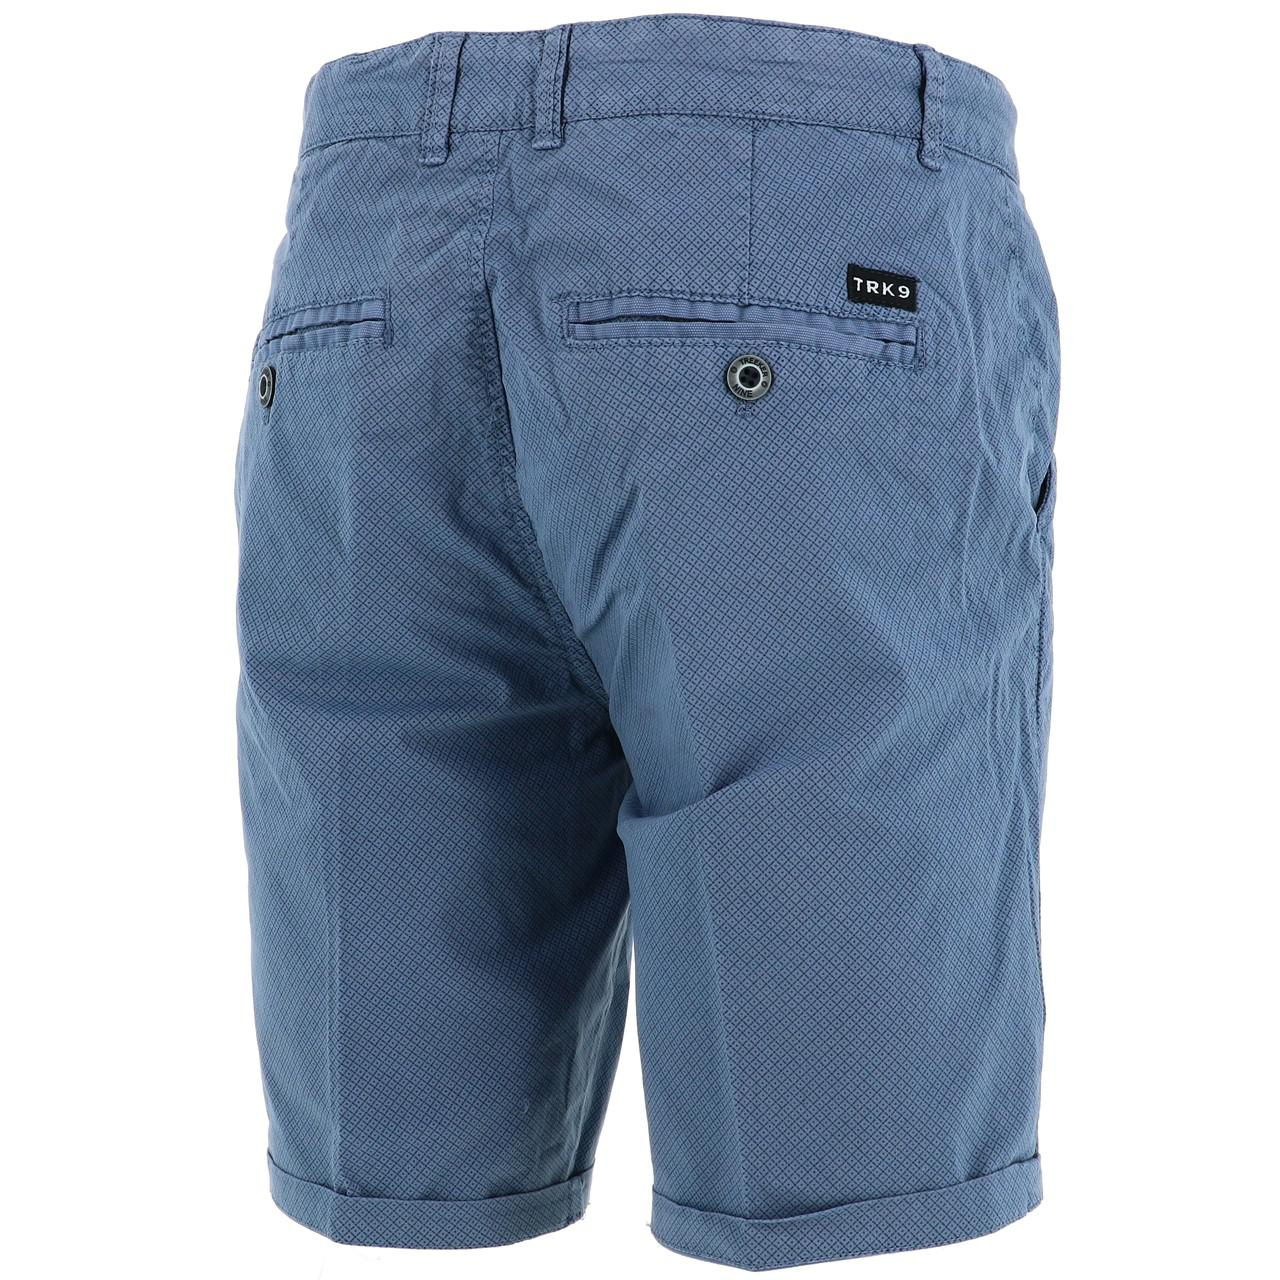 Bermuda-Shorts-Treeker9-Arizona-Chino-Strechy-Bl-Blue-47253-New thumbnail 5